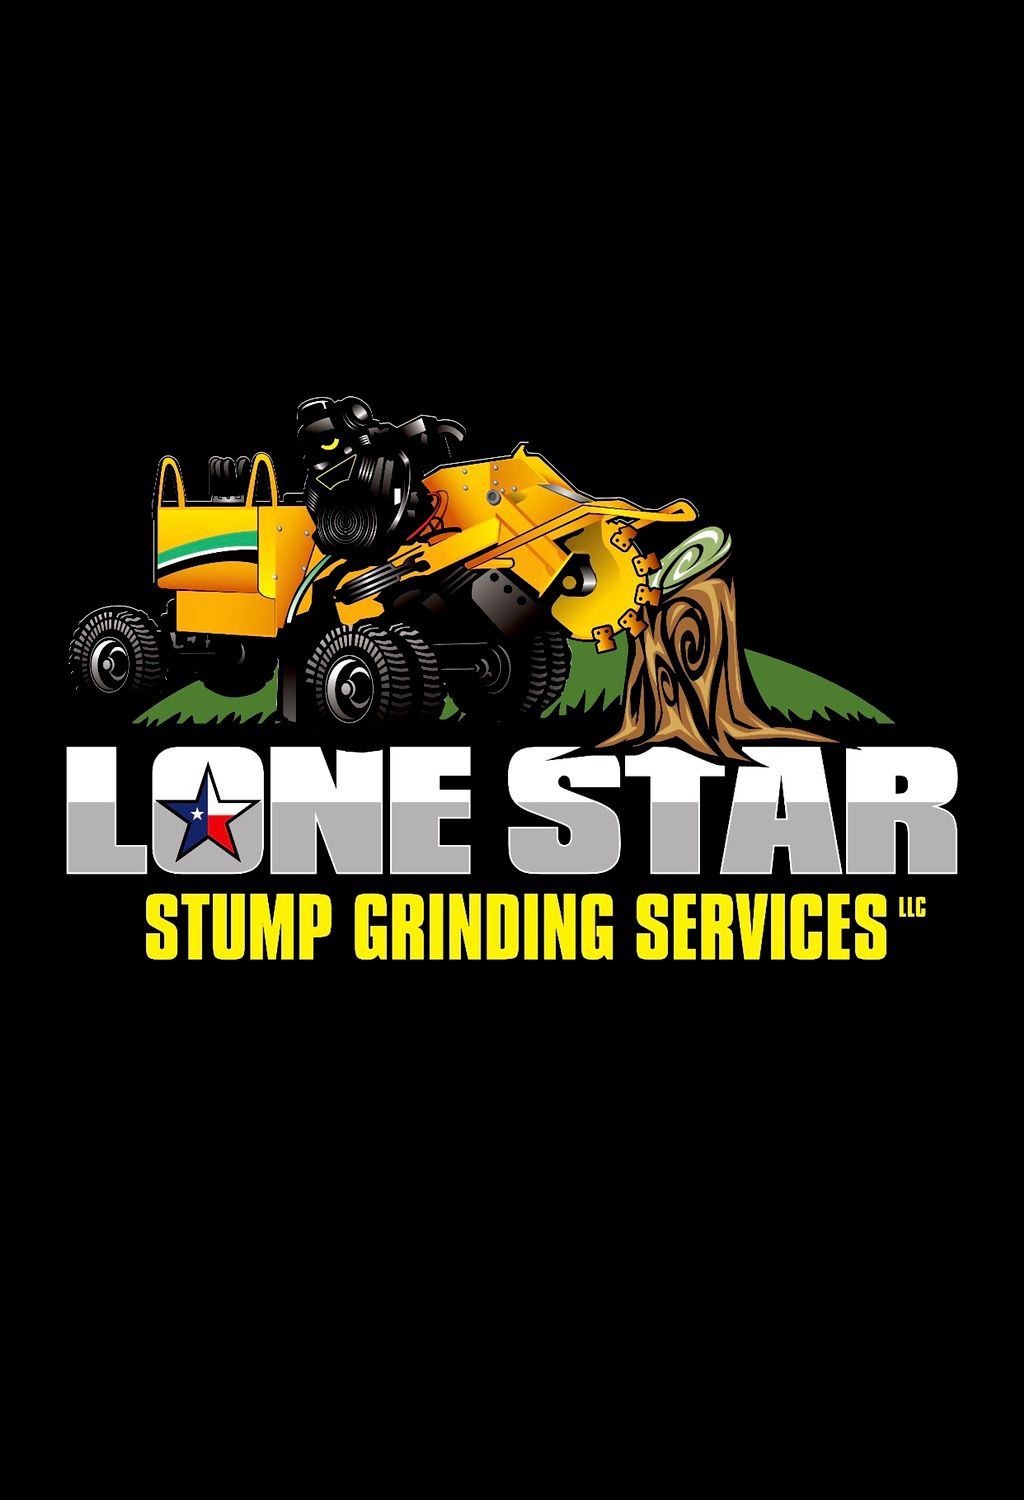 Lone Star Stump Grinding Services LLC